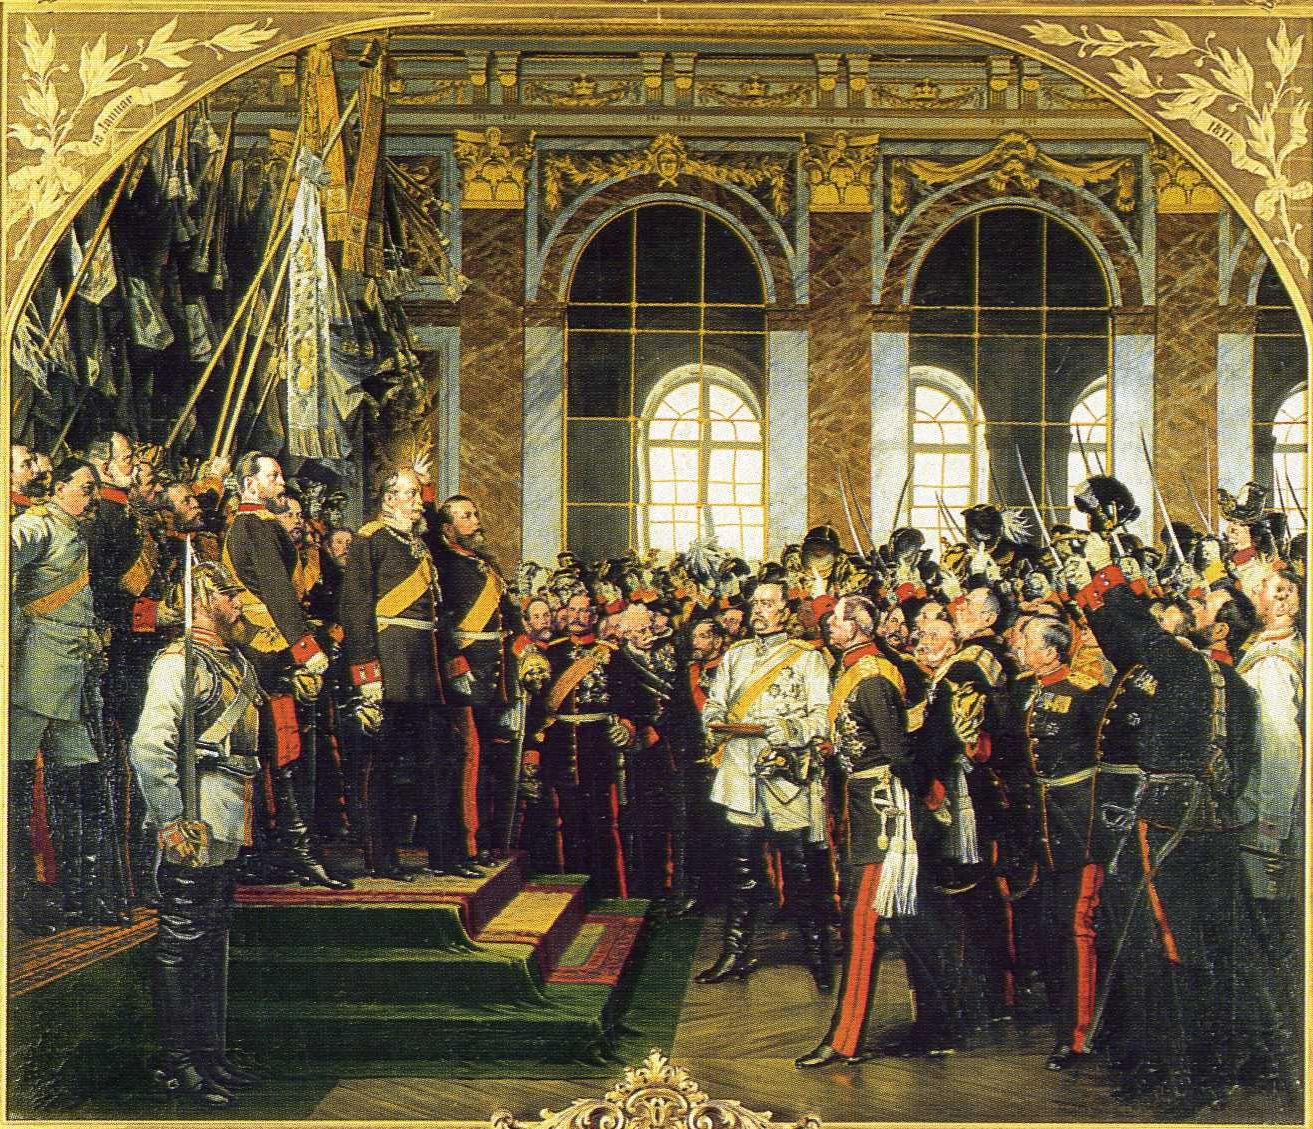 Painting celebrating the 1871 proclamation, in the French royal palace of Versailles' Hall of Mirrors, following the Franco-Prussian War, of Wilhelm I of Prussia as German emperor. Bismarck is the stout figure in white in the center. Artist: Anton von Werner.